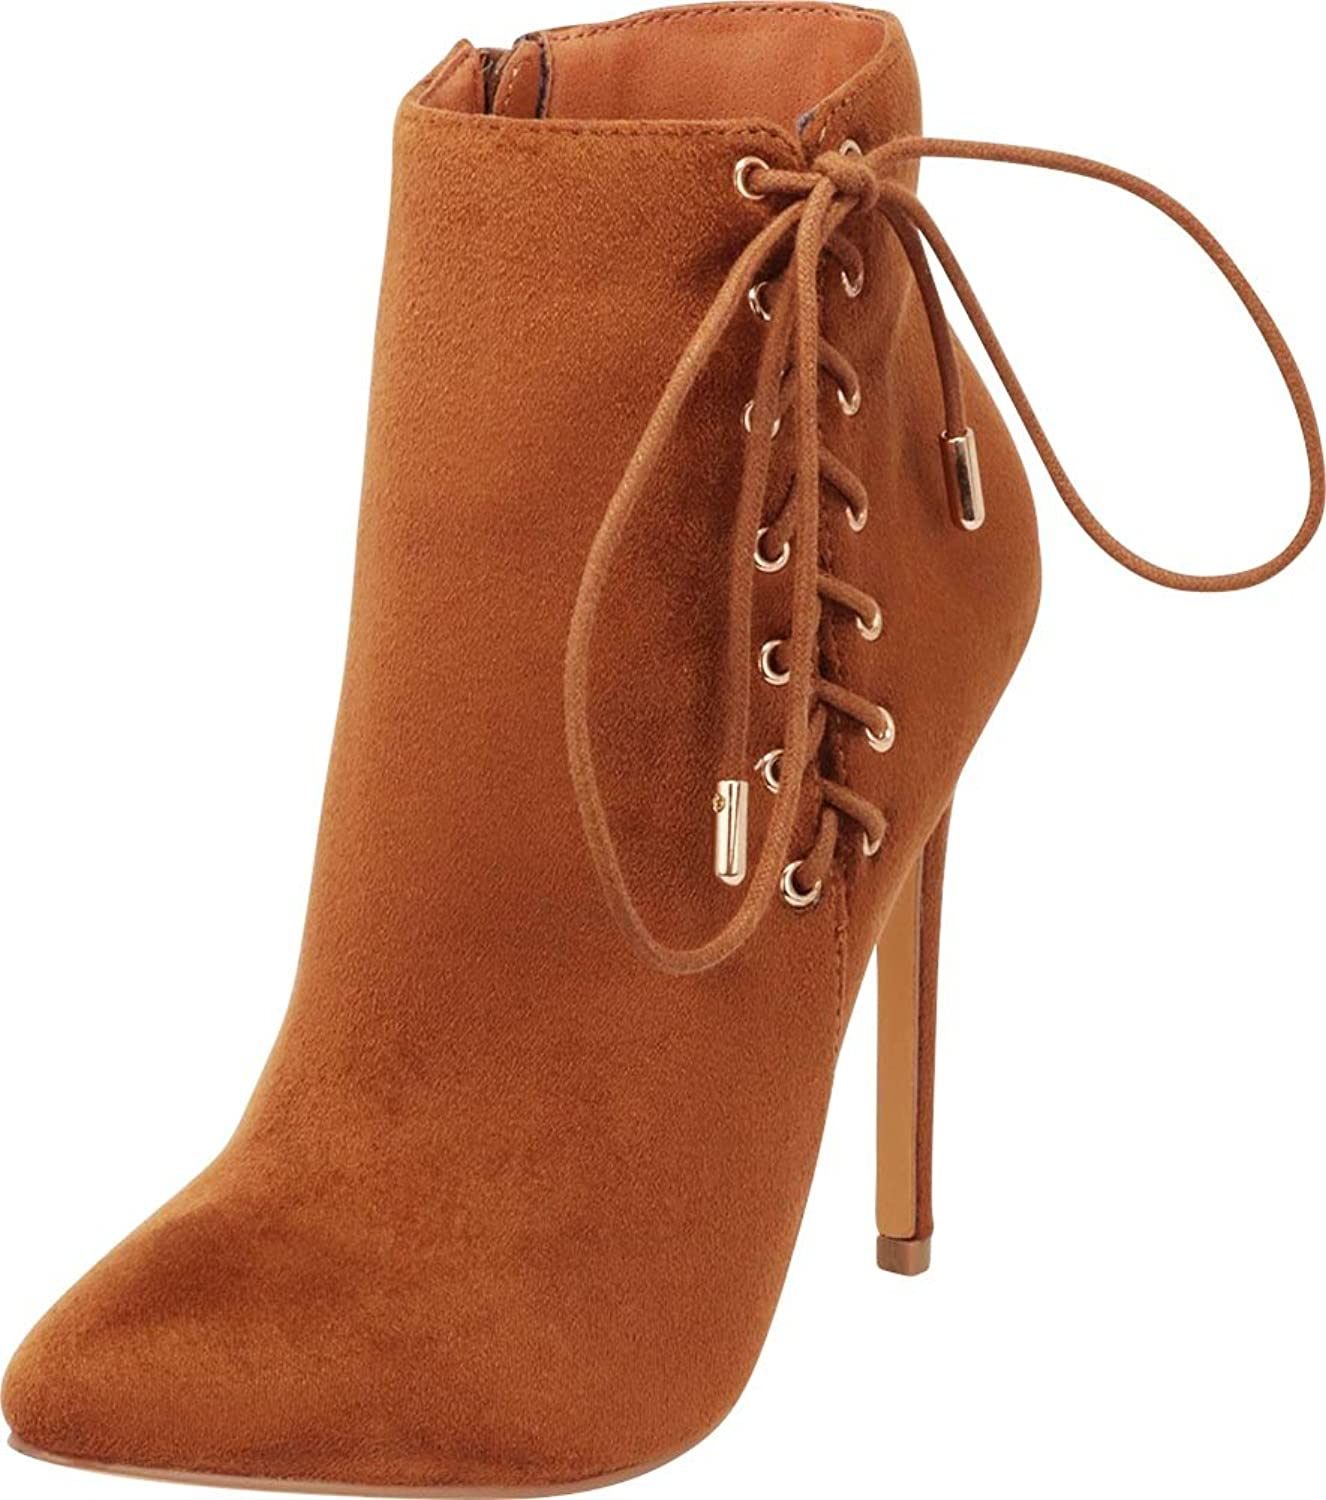 Cambridge Select Women's Closed Pointed Toe Side Corset Lace-up Inner Zip Stiletto High Heel Ankle Bootie